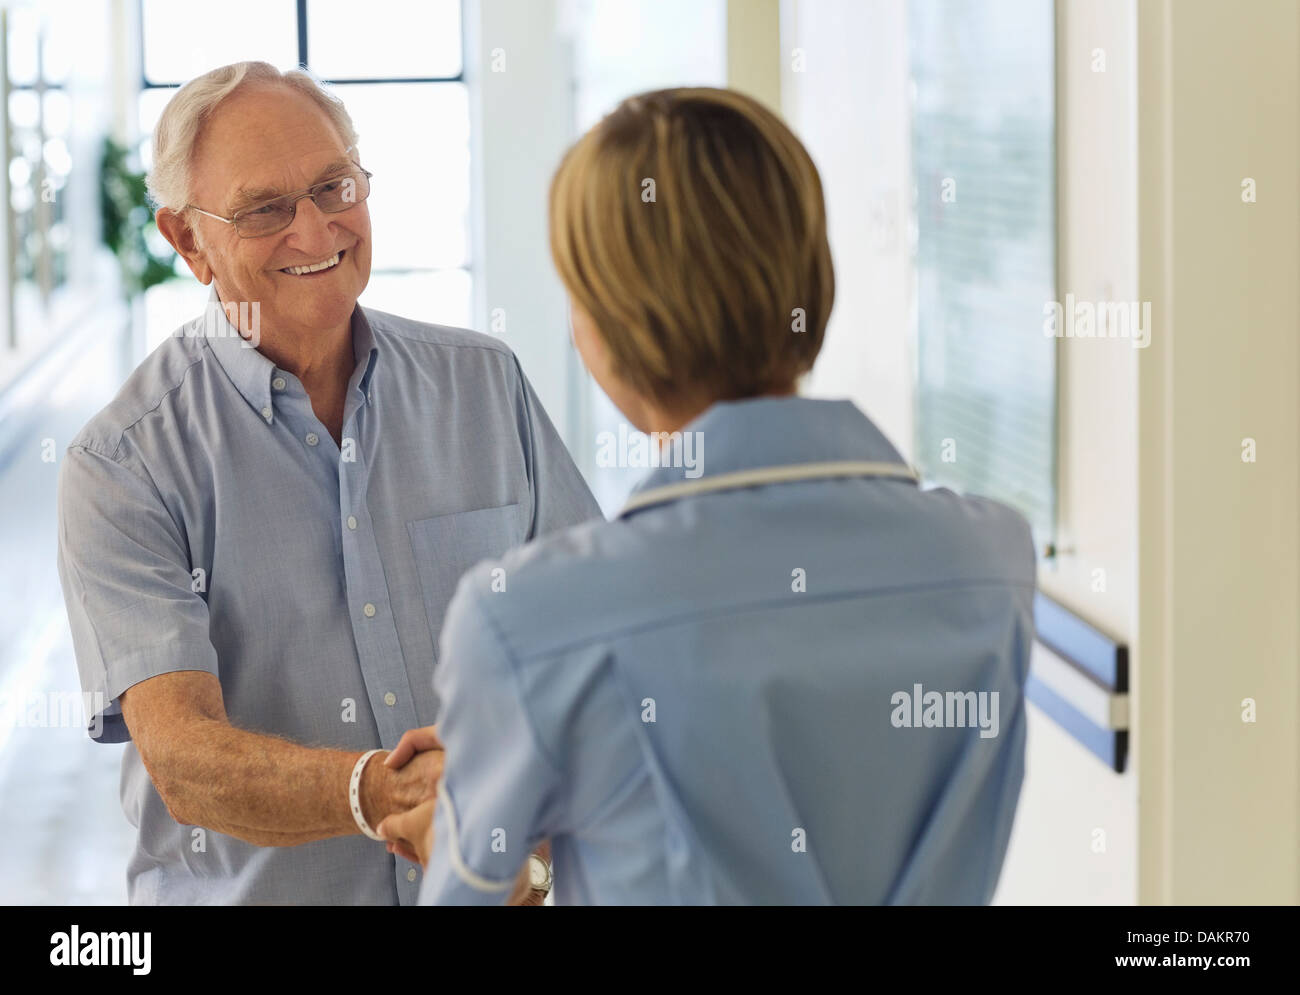 Older patient and nurse shaking hands in hospital - Stock Image